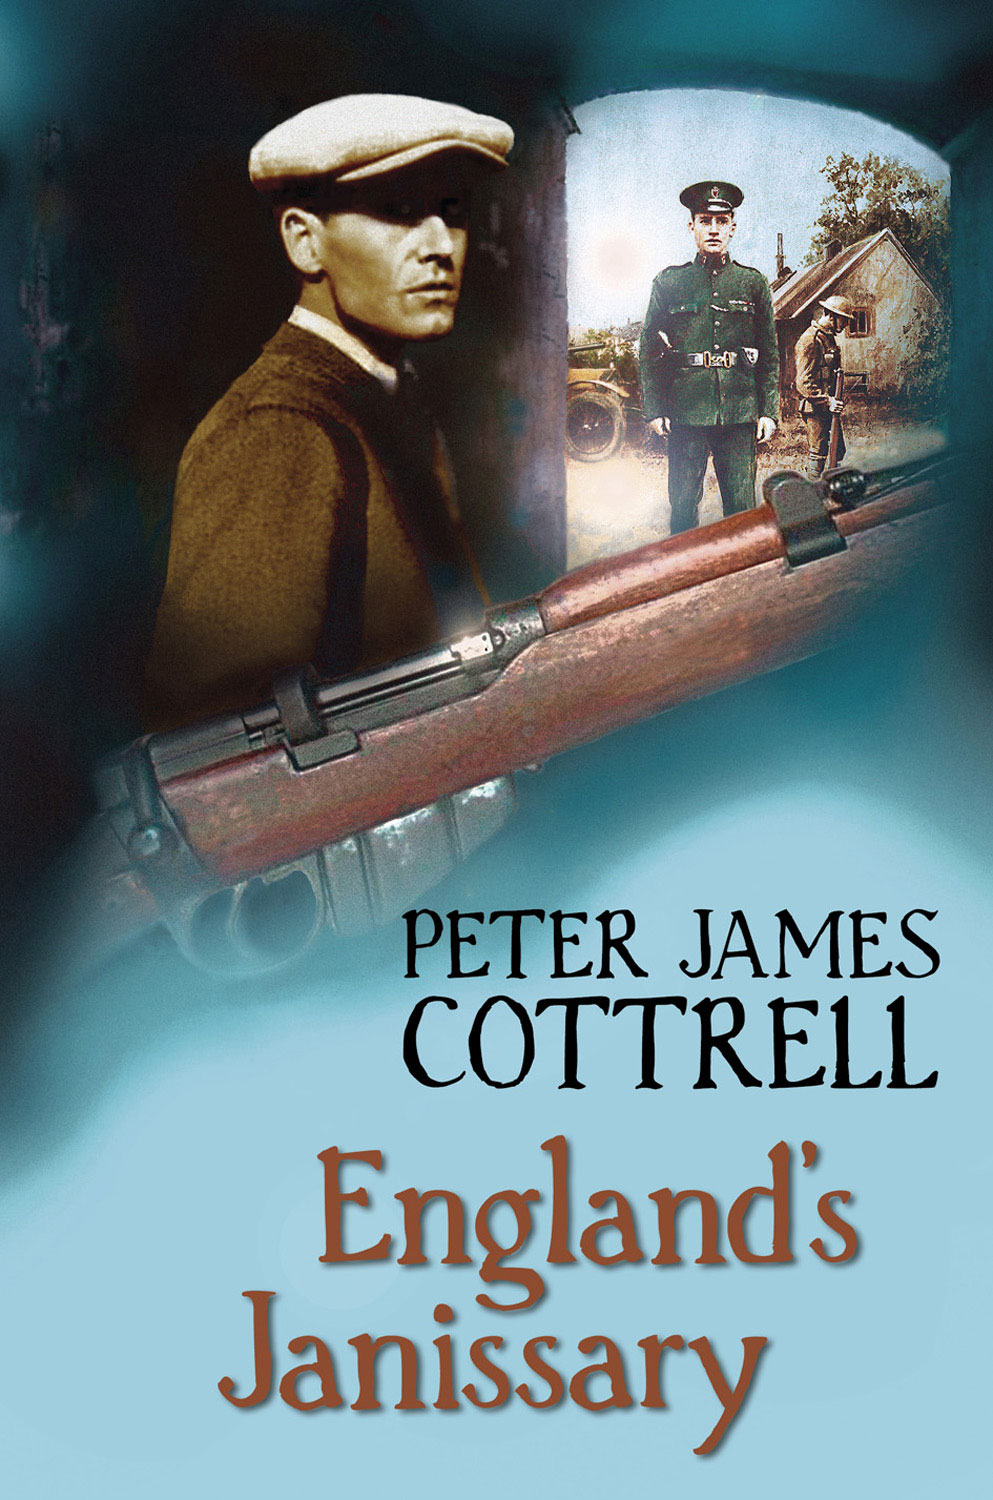 England's Janissary By: Peter James Cottrell